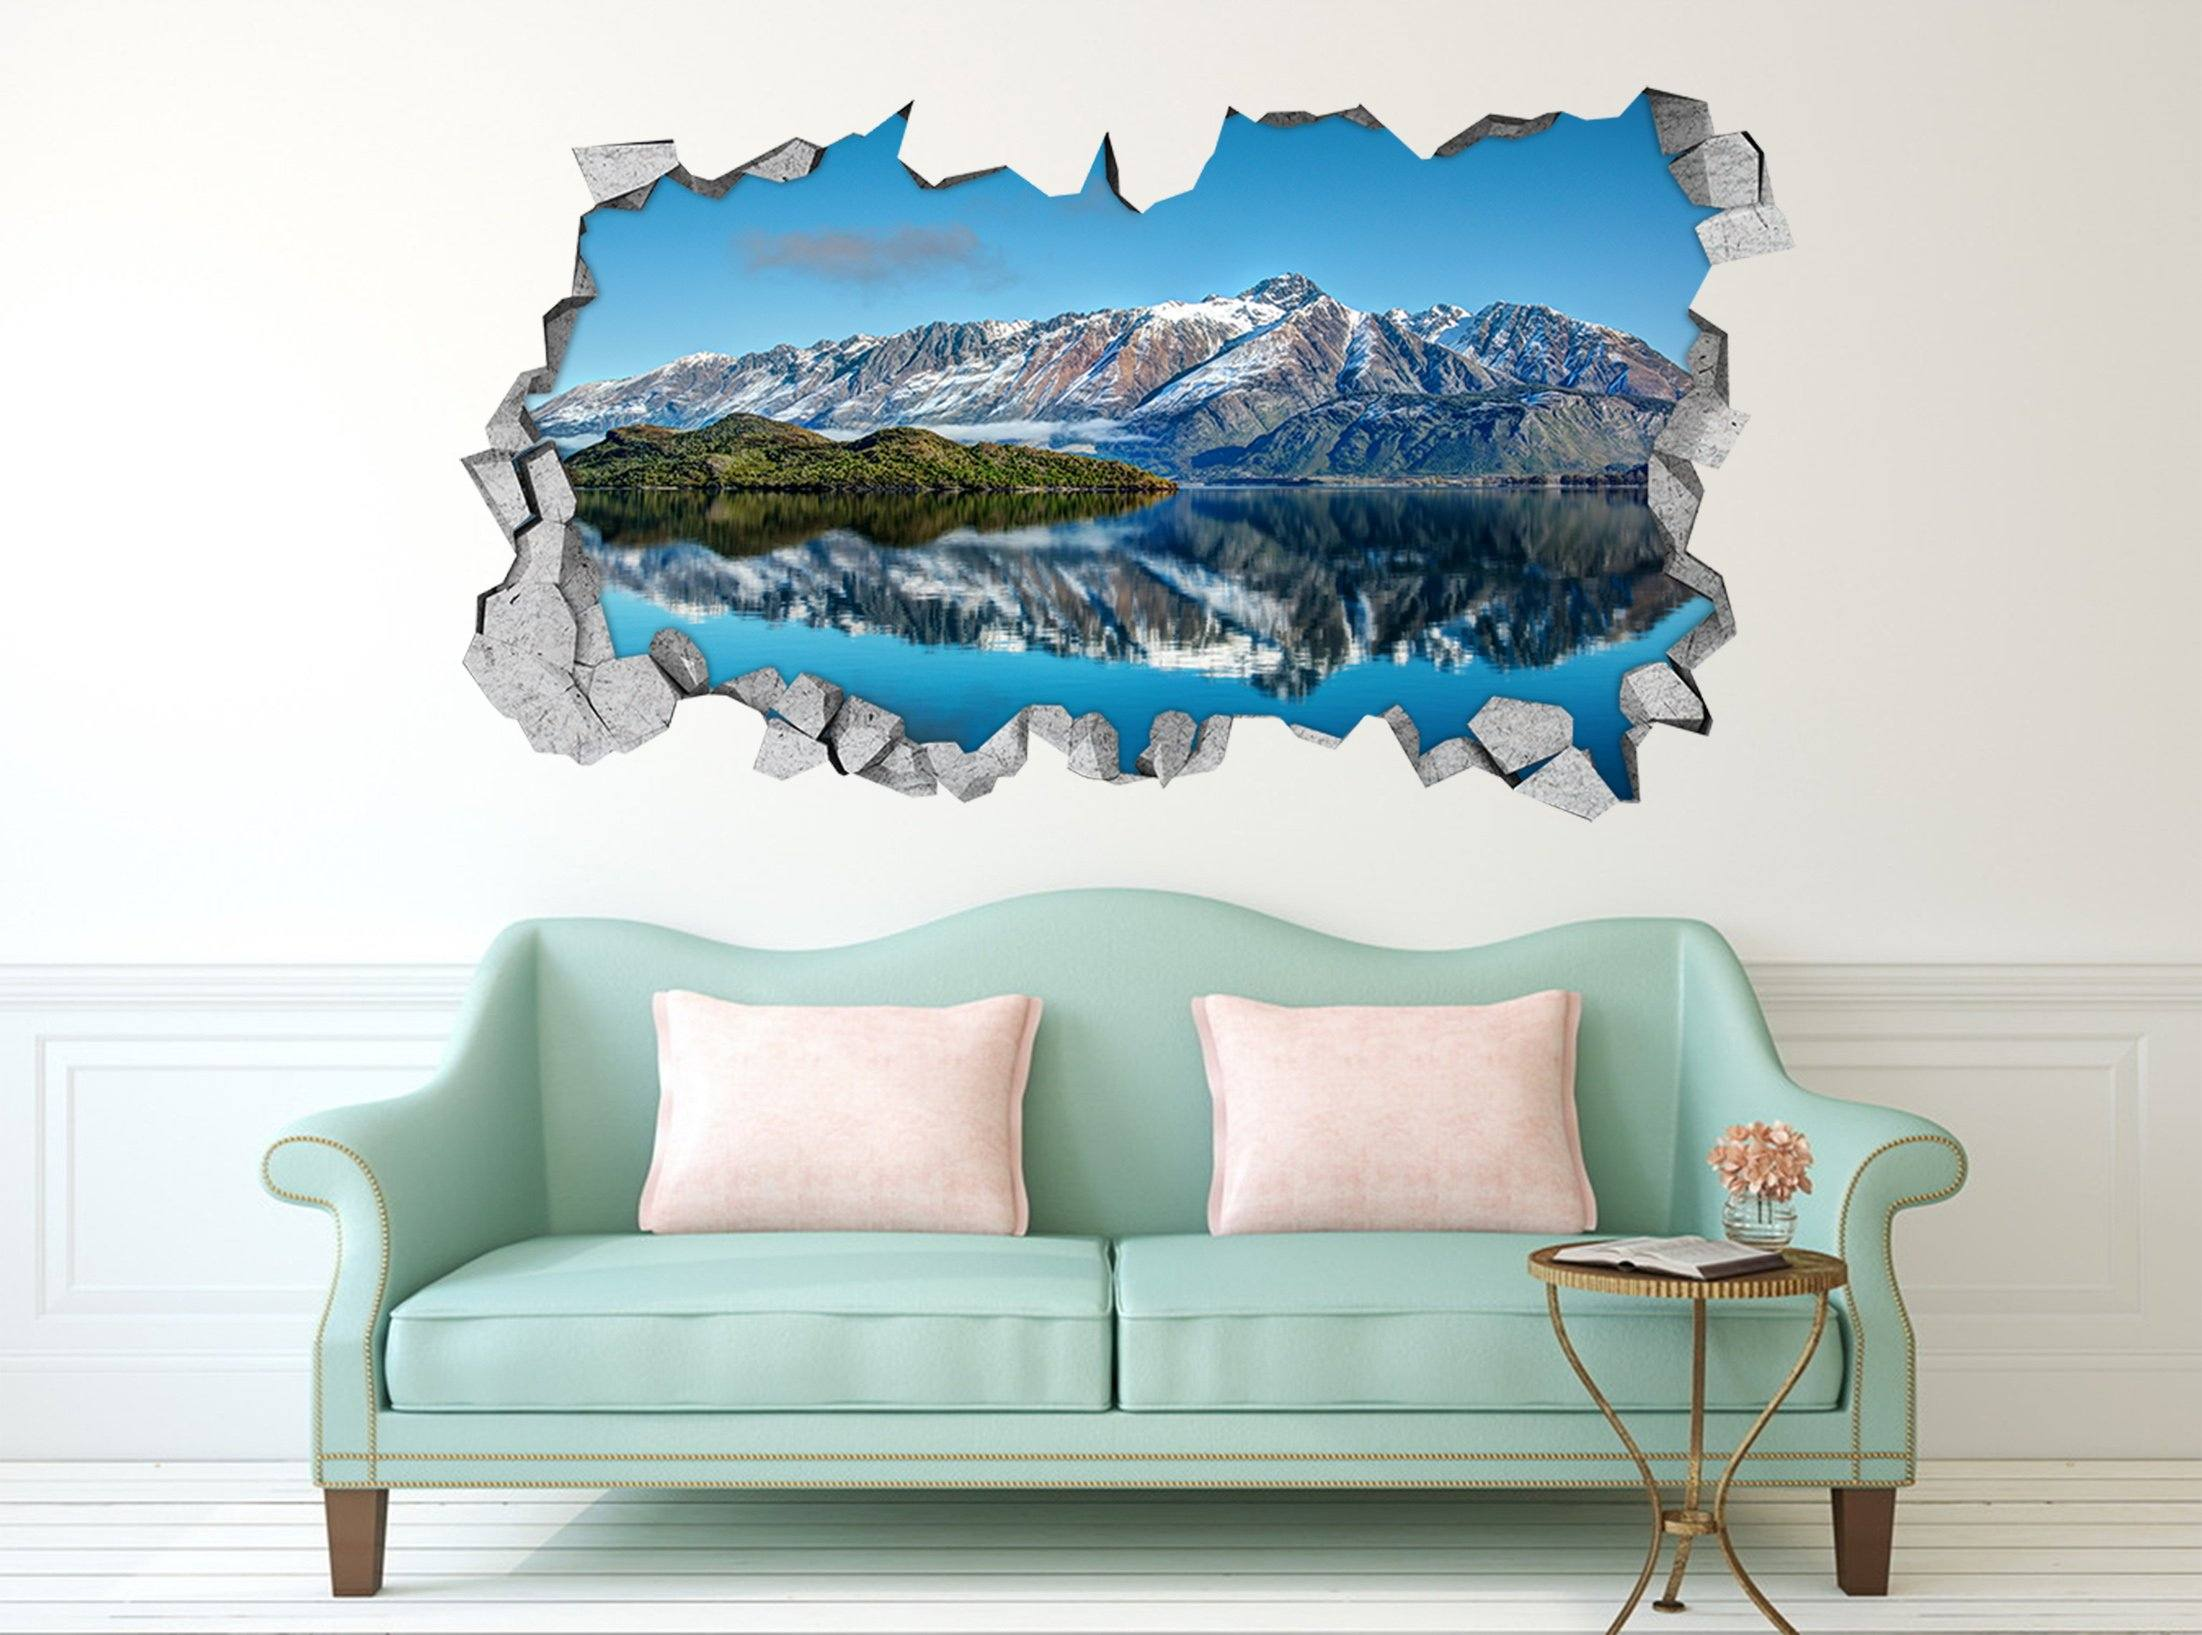 3D Blue Mountain Lake 310 Broken Wall Murals